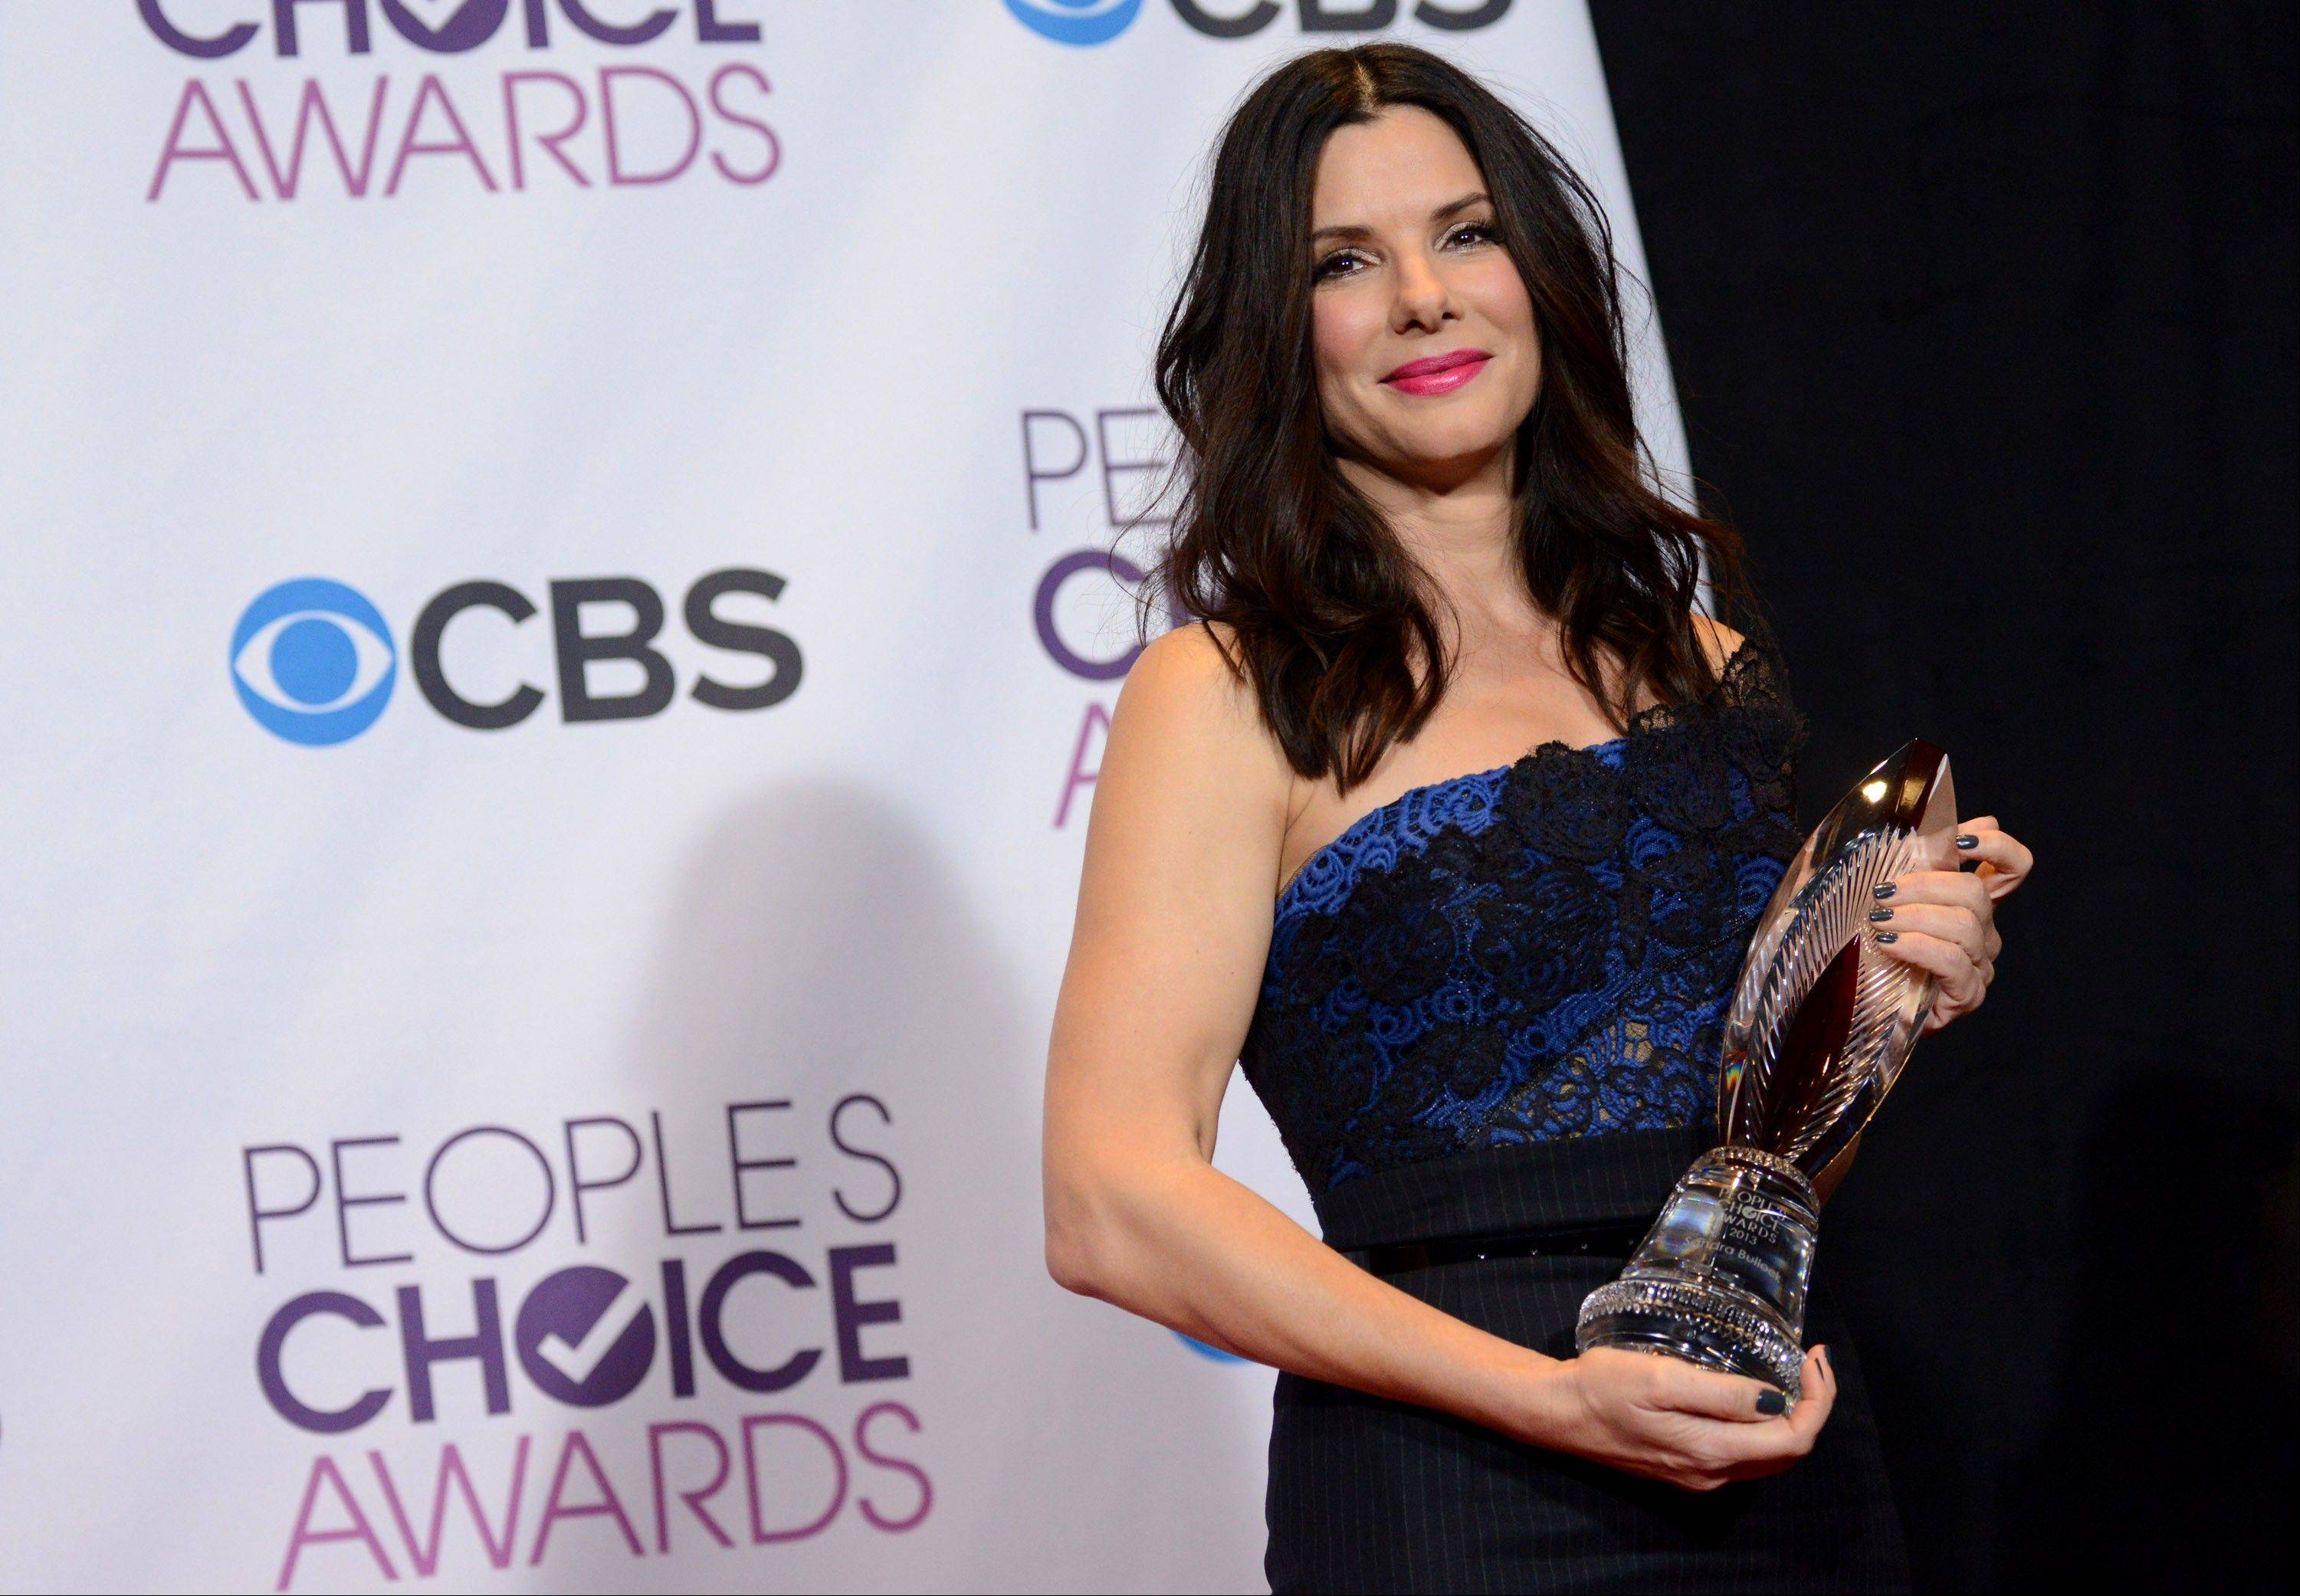 Sandra Bullock poses backstage with the award for favorite humanitarian at the Peopleís Choice Awards at the Nokia Theatre on Wednesday Jan. 9, 2013, in Los Angeles.